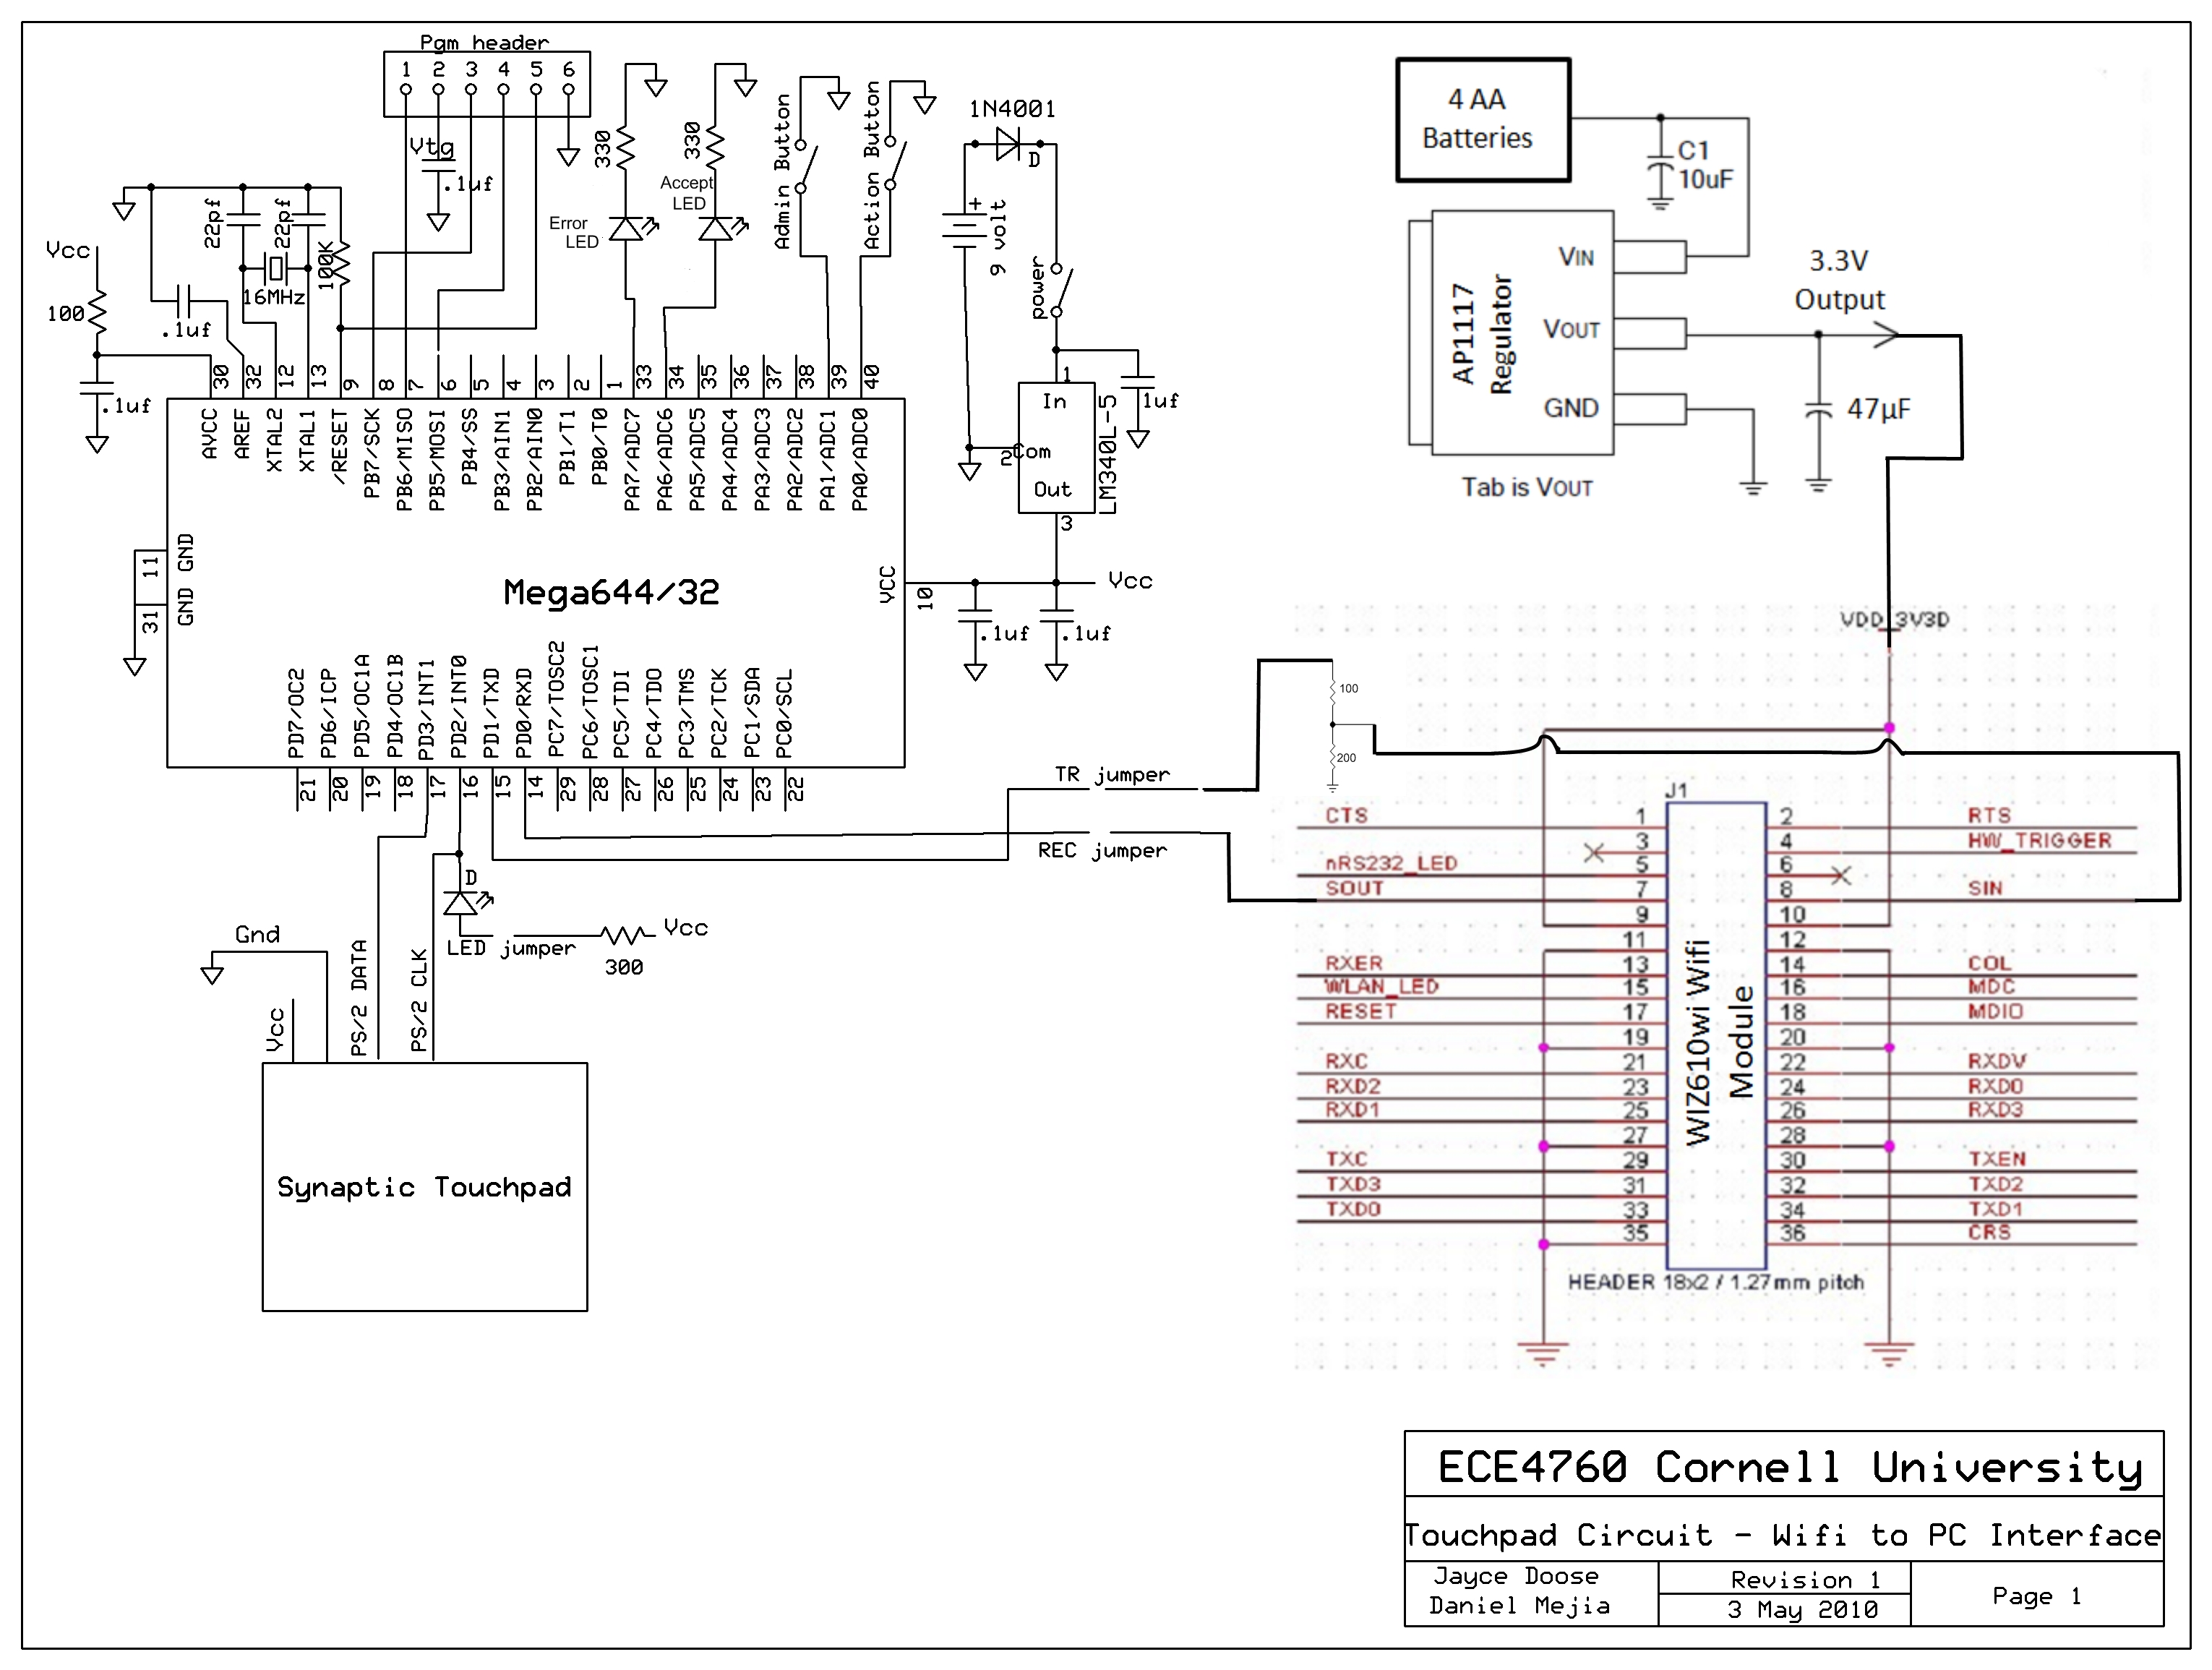 Gesture Based Touchpad Security System Wiring Diagram Parallel To Usb Schematic With Wifi Module Included